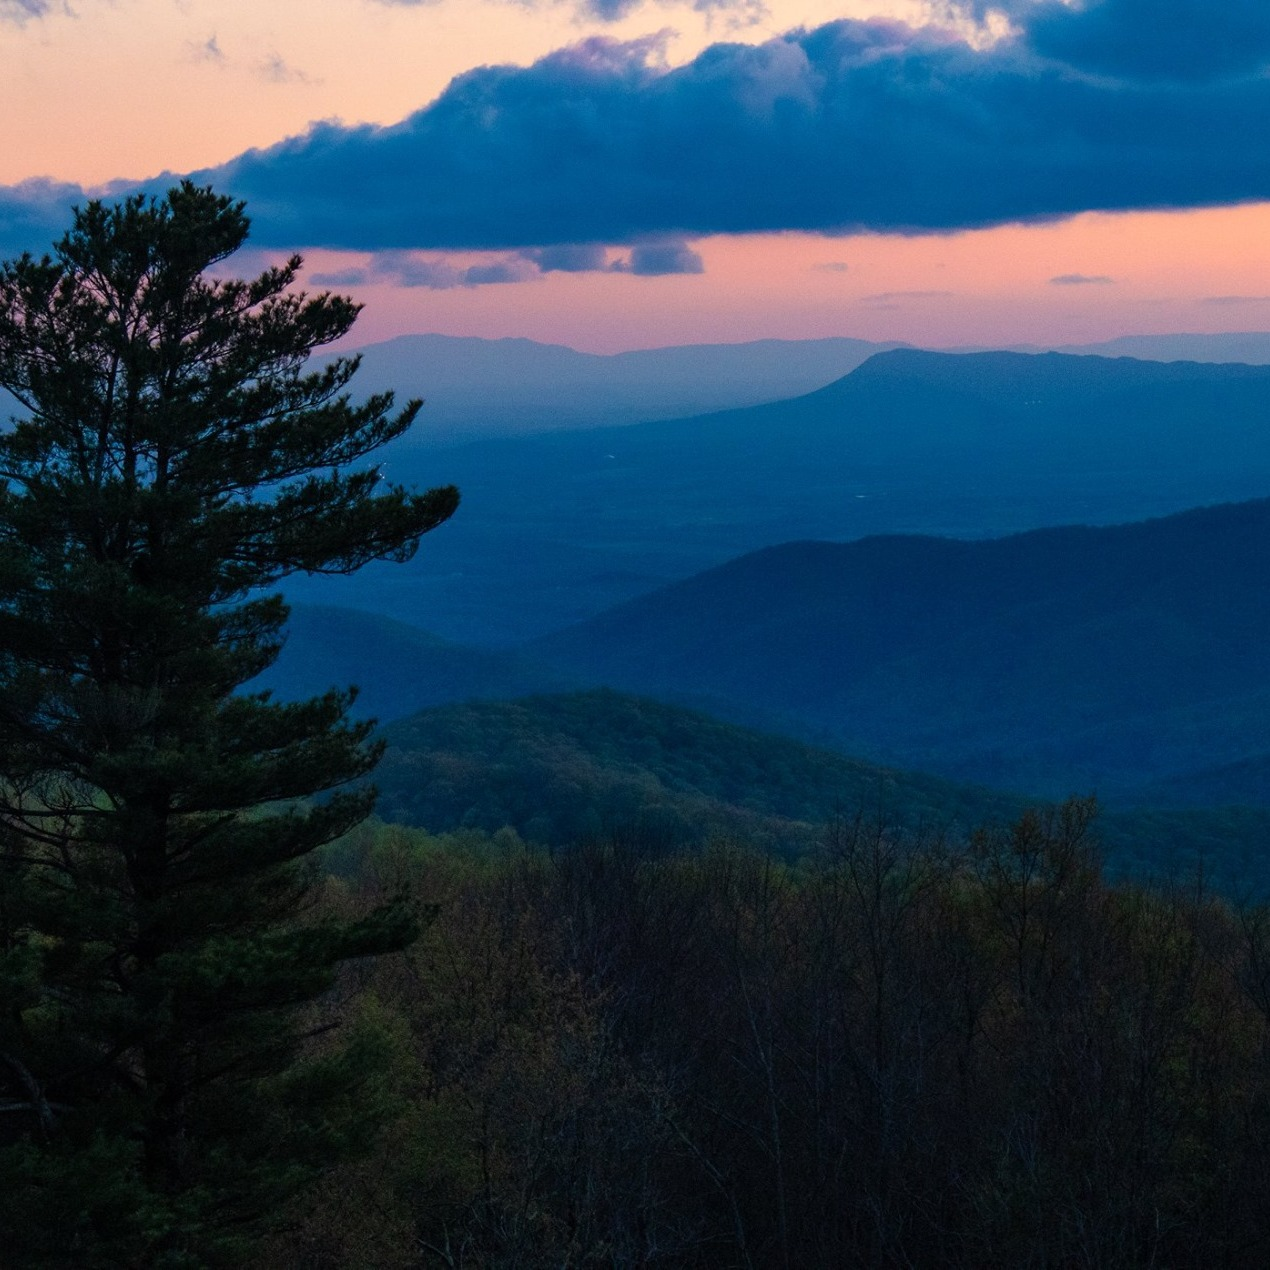 Skyline Drive sunset with tree in forground and mountains in background.